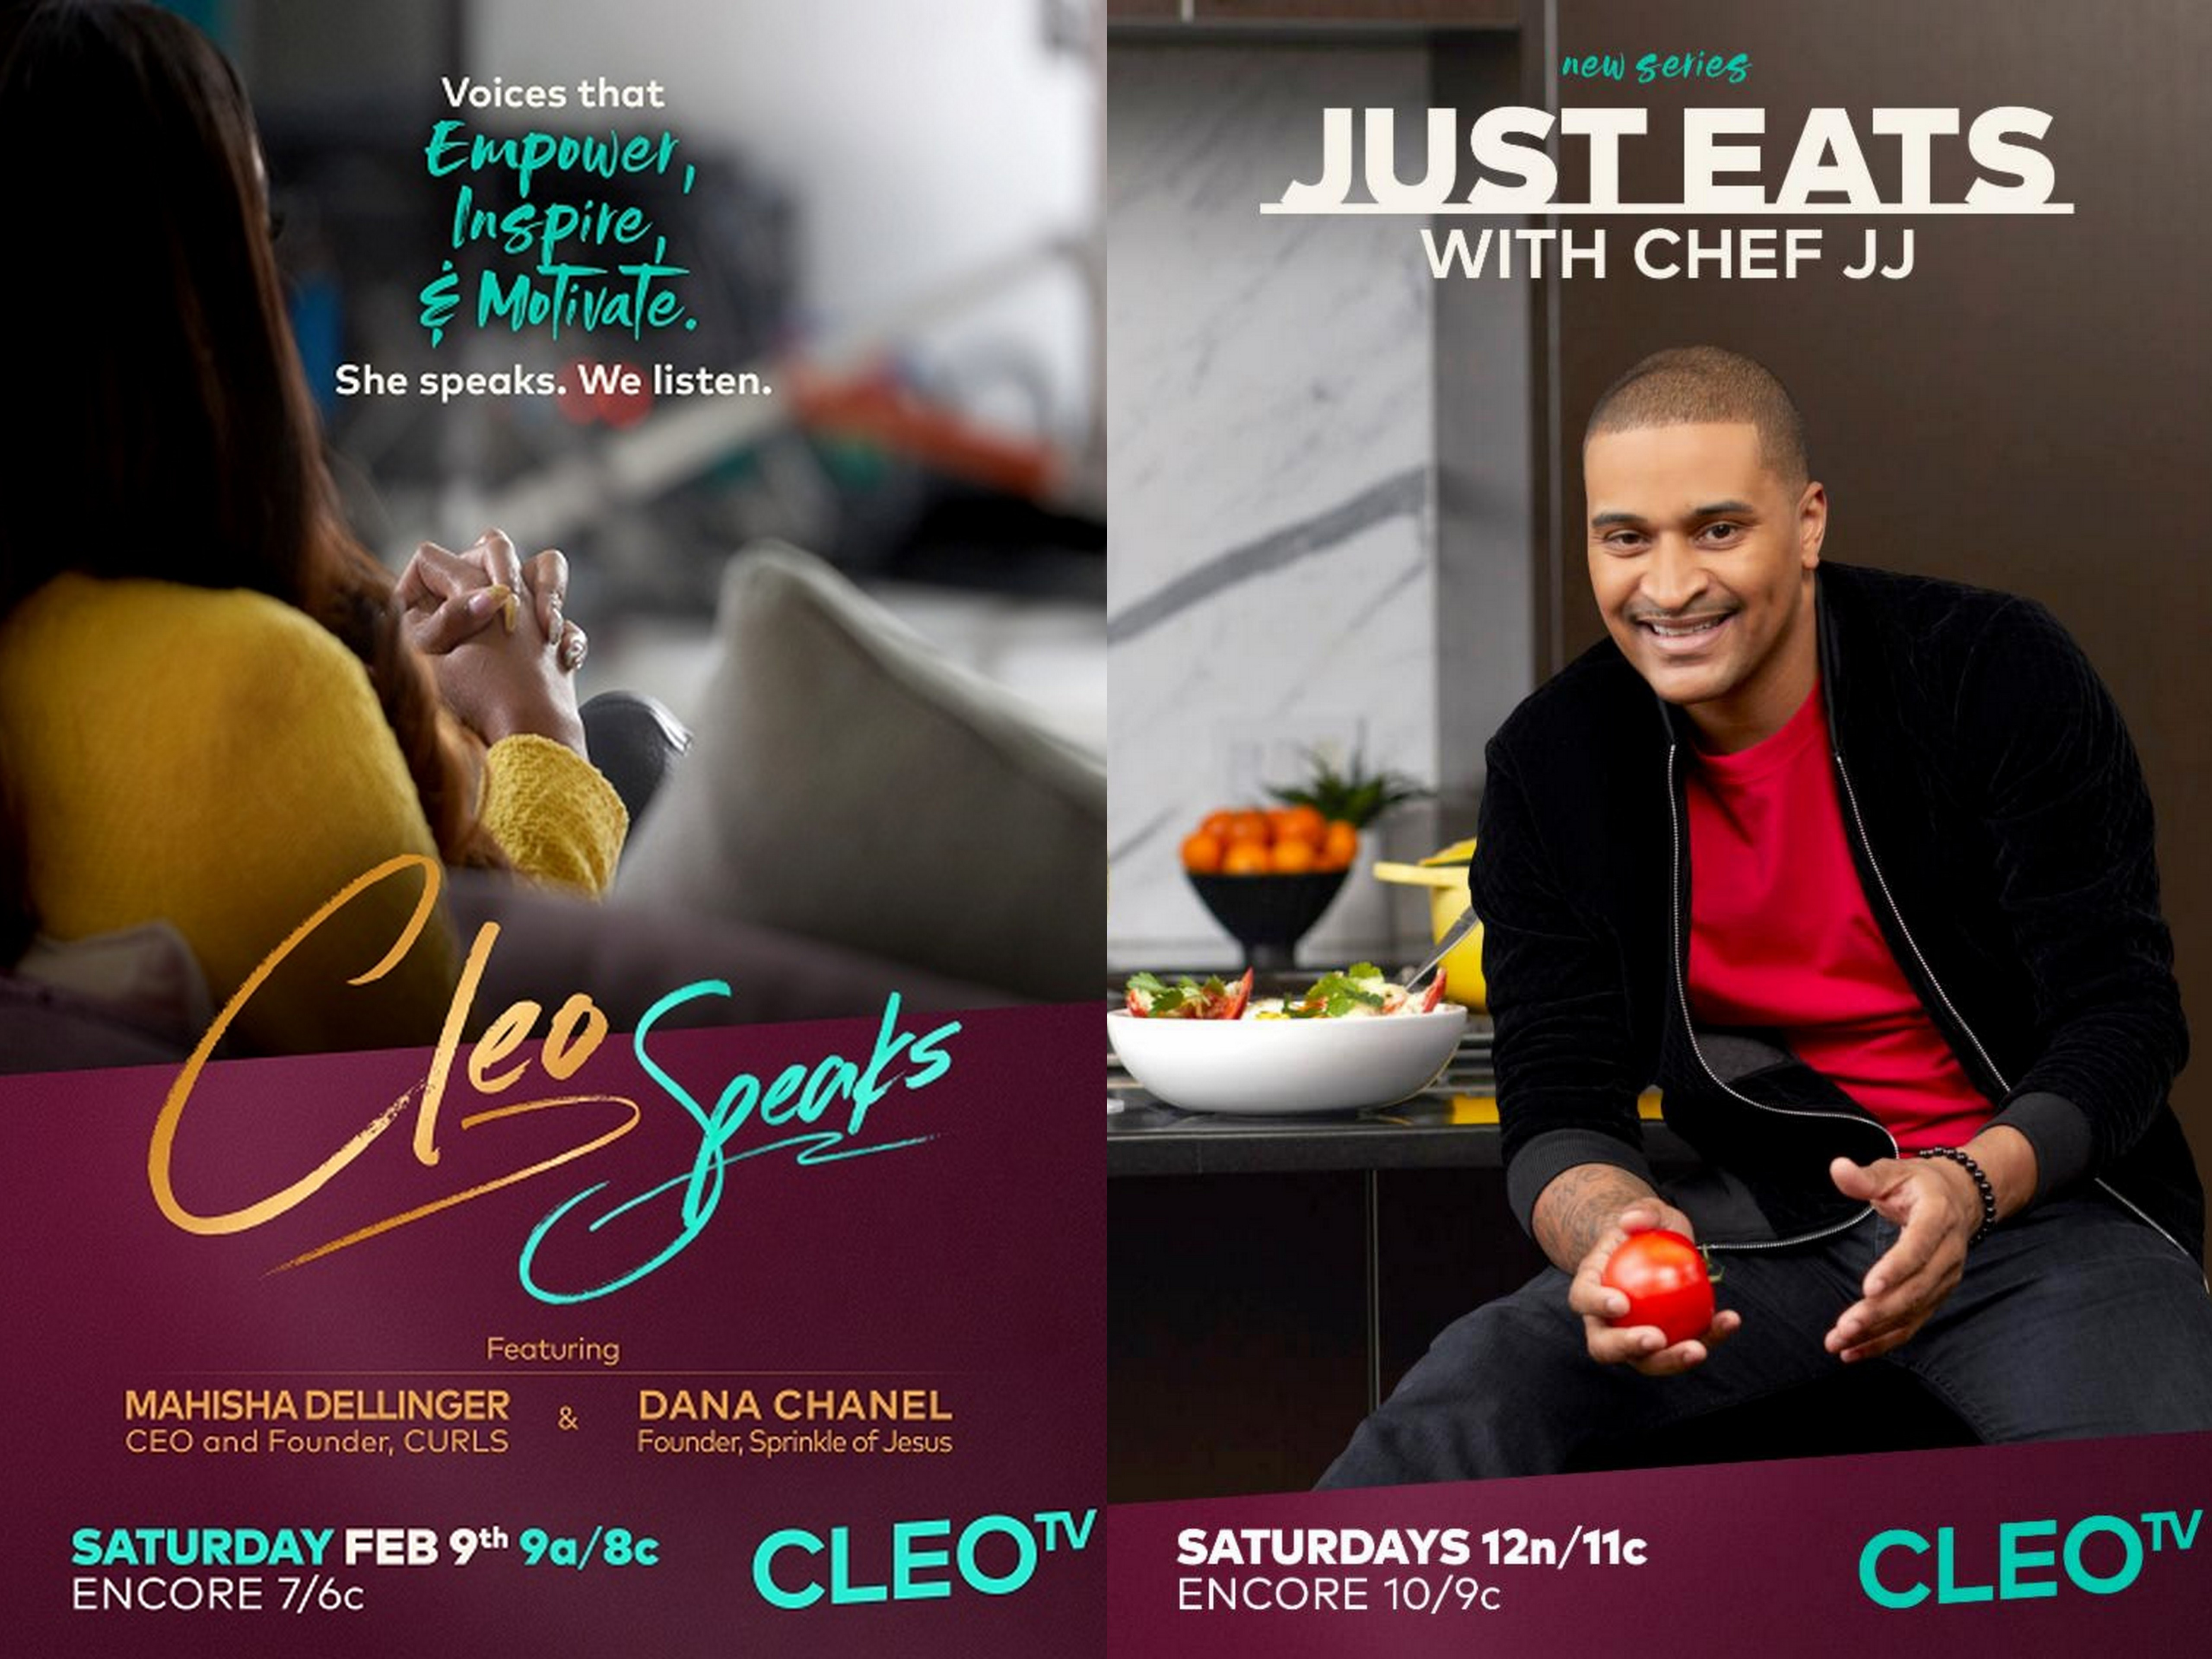 CLEO SPEAKS premieres this Saturday, followed by new episode of Just